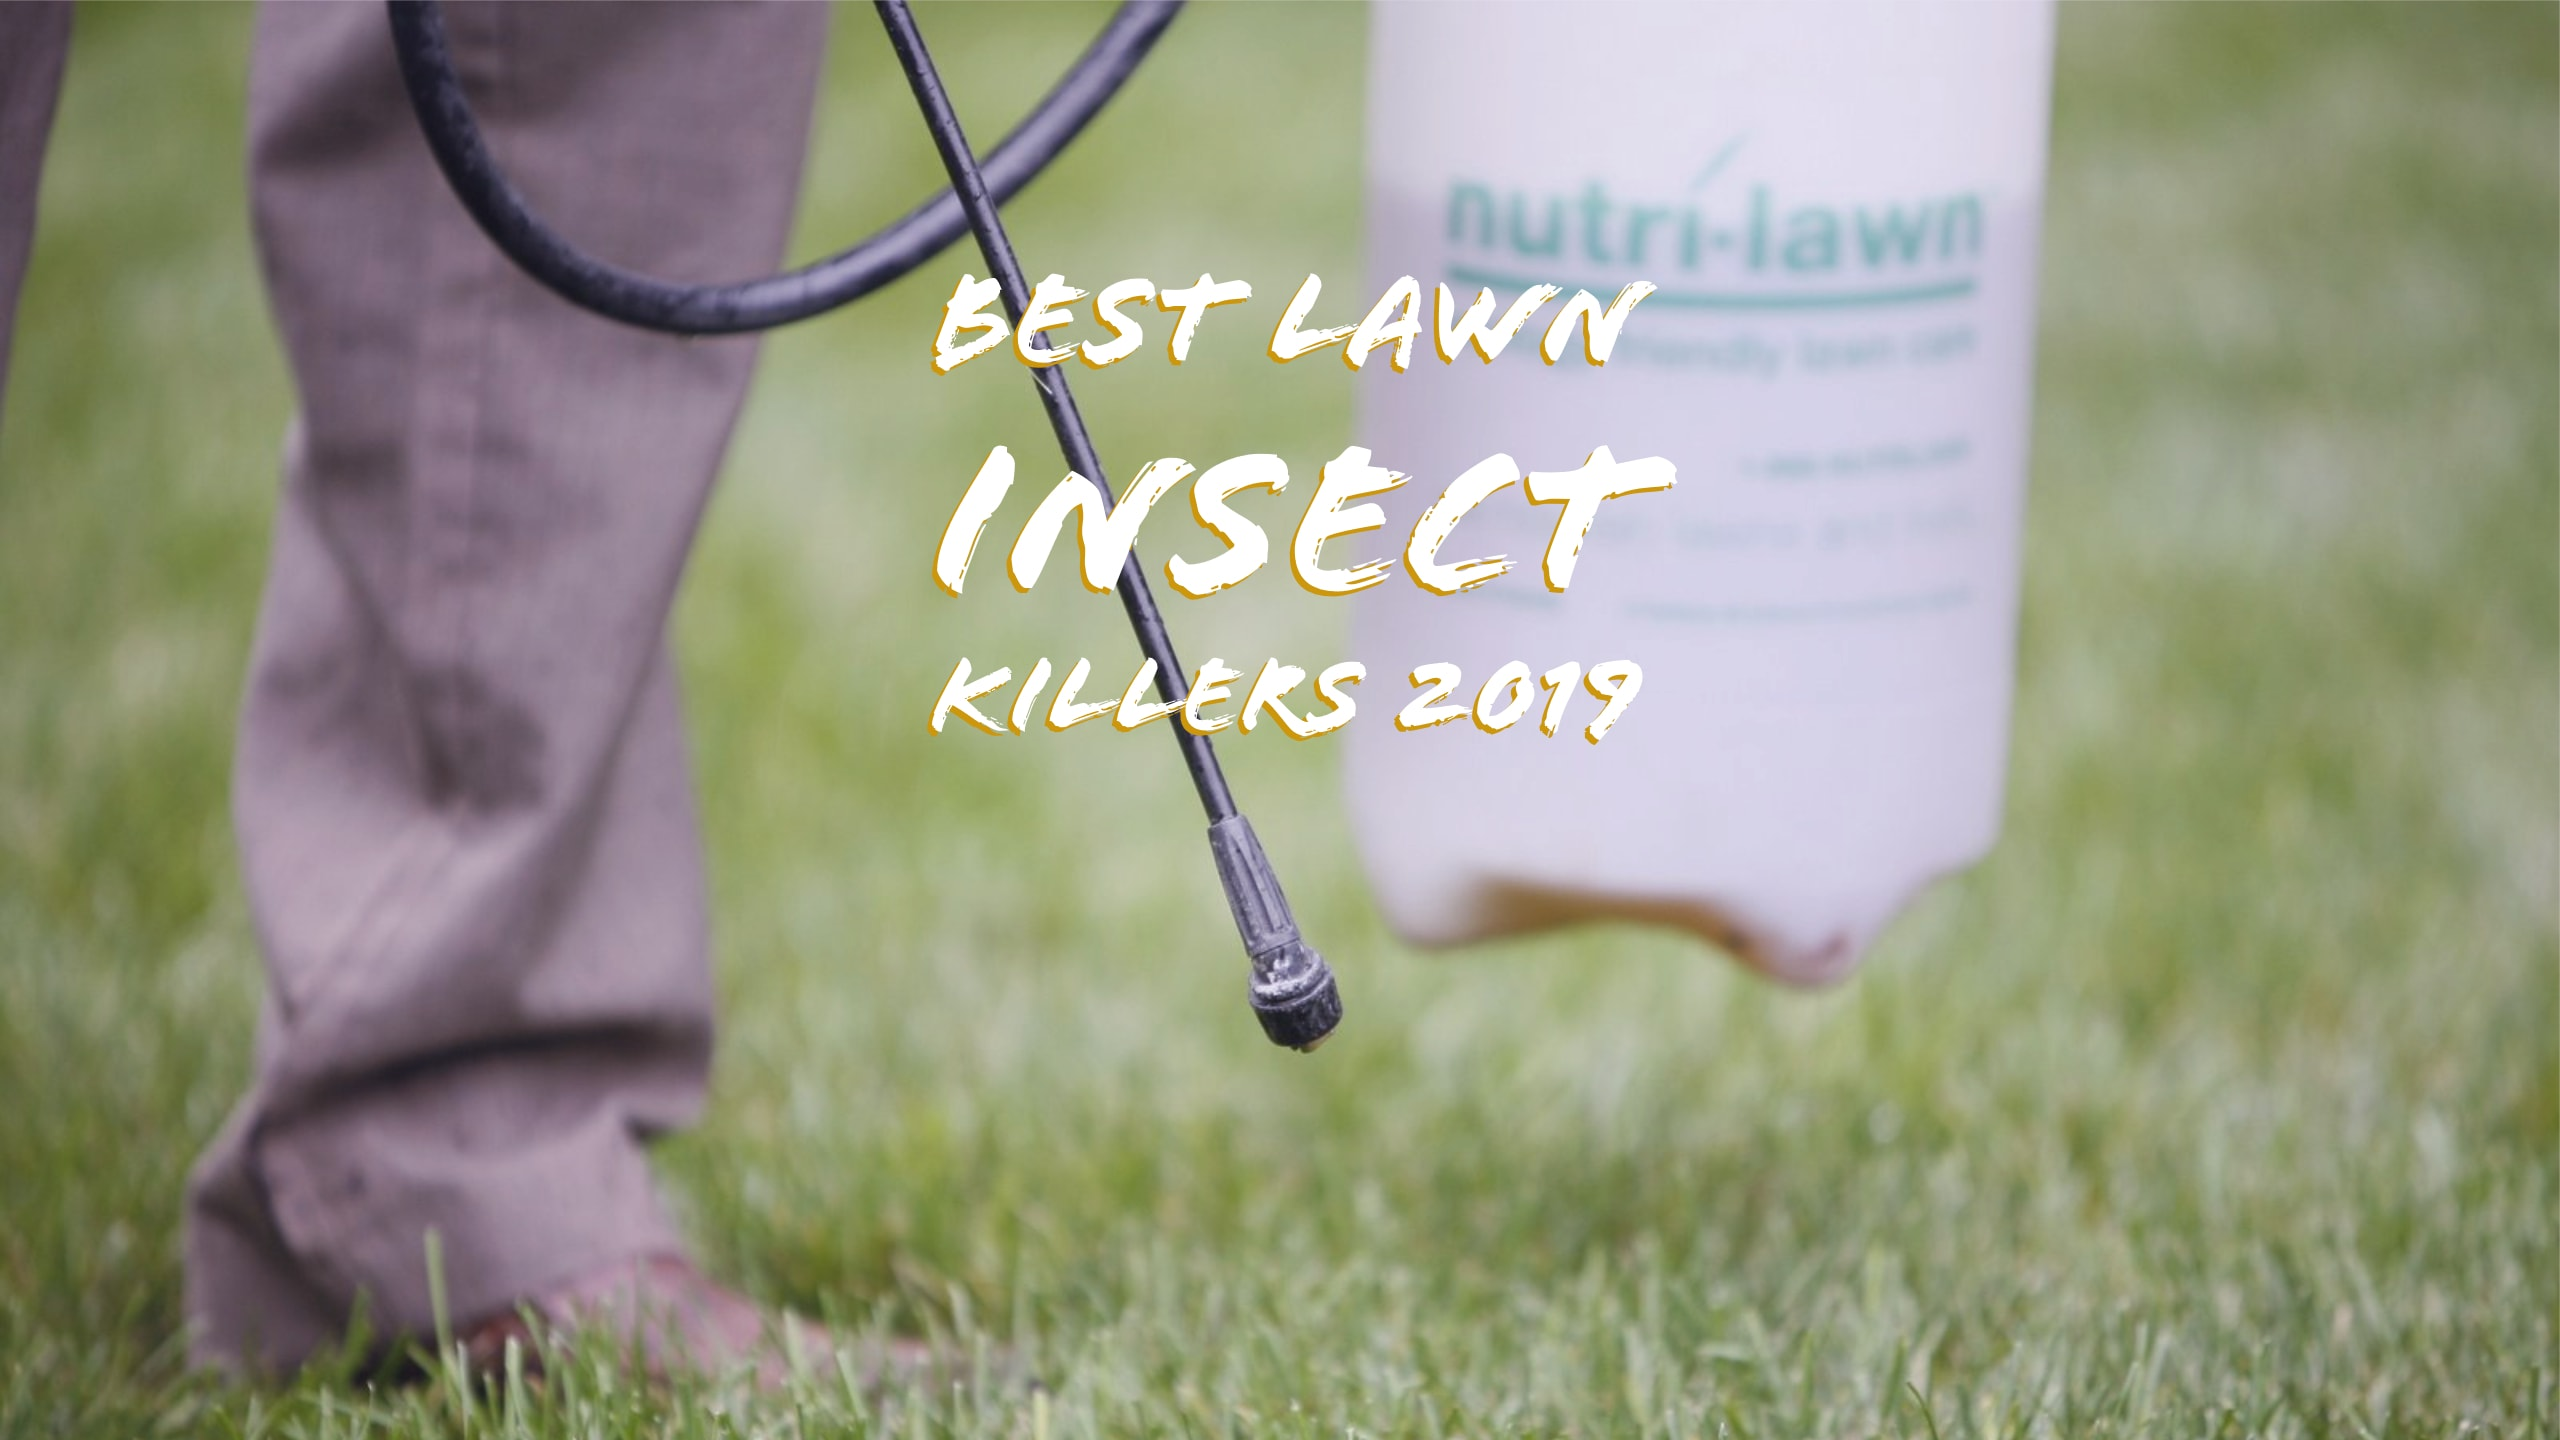 Best Lawn Insect Killers 2020 Reviews, Buying Guide & Comparison